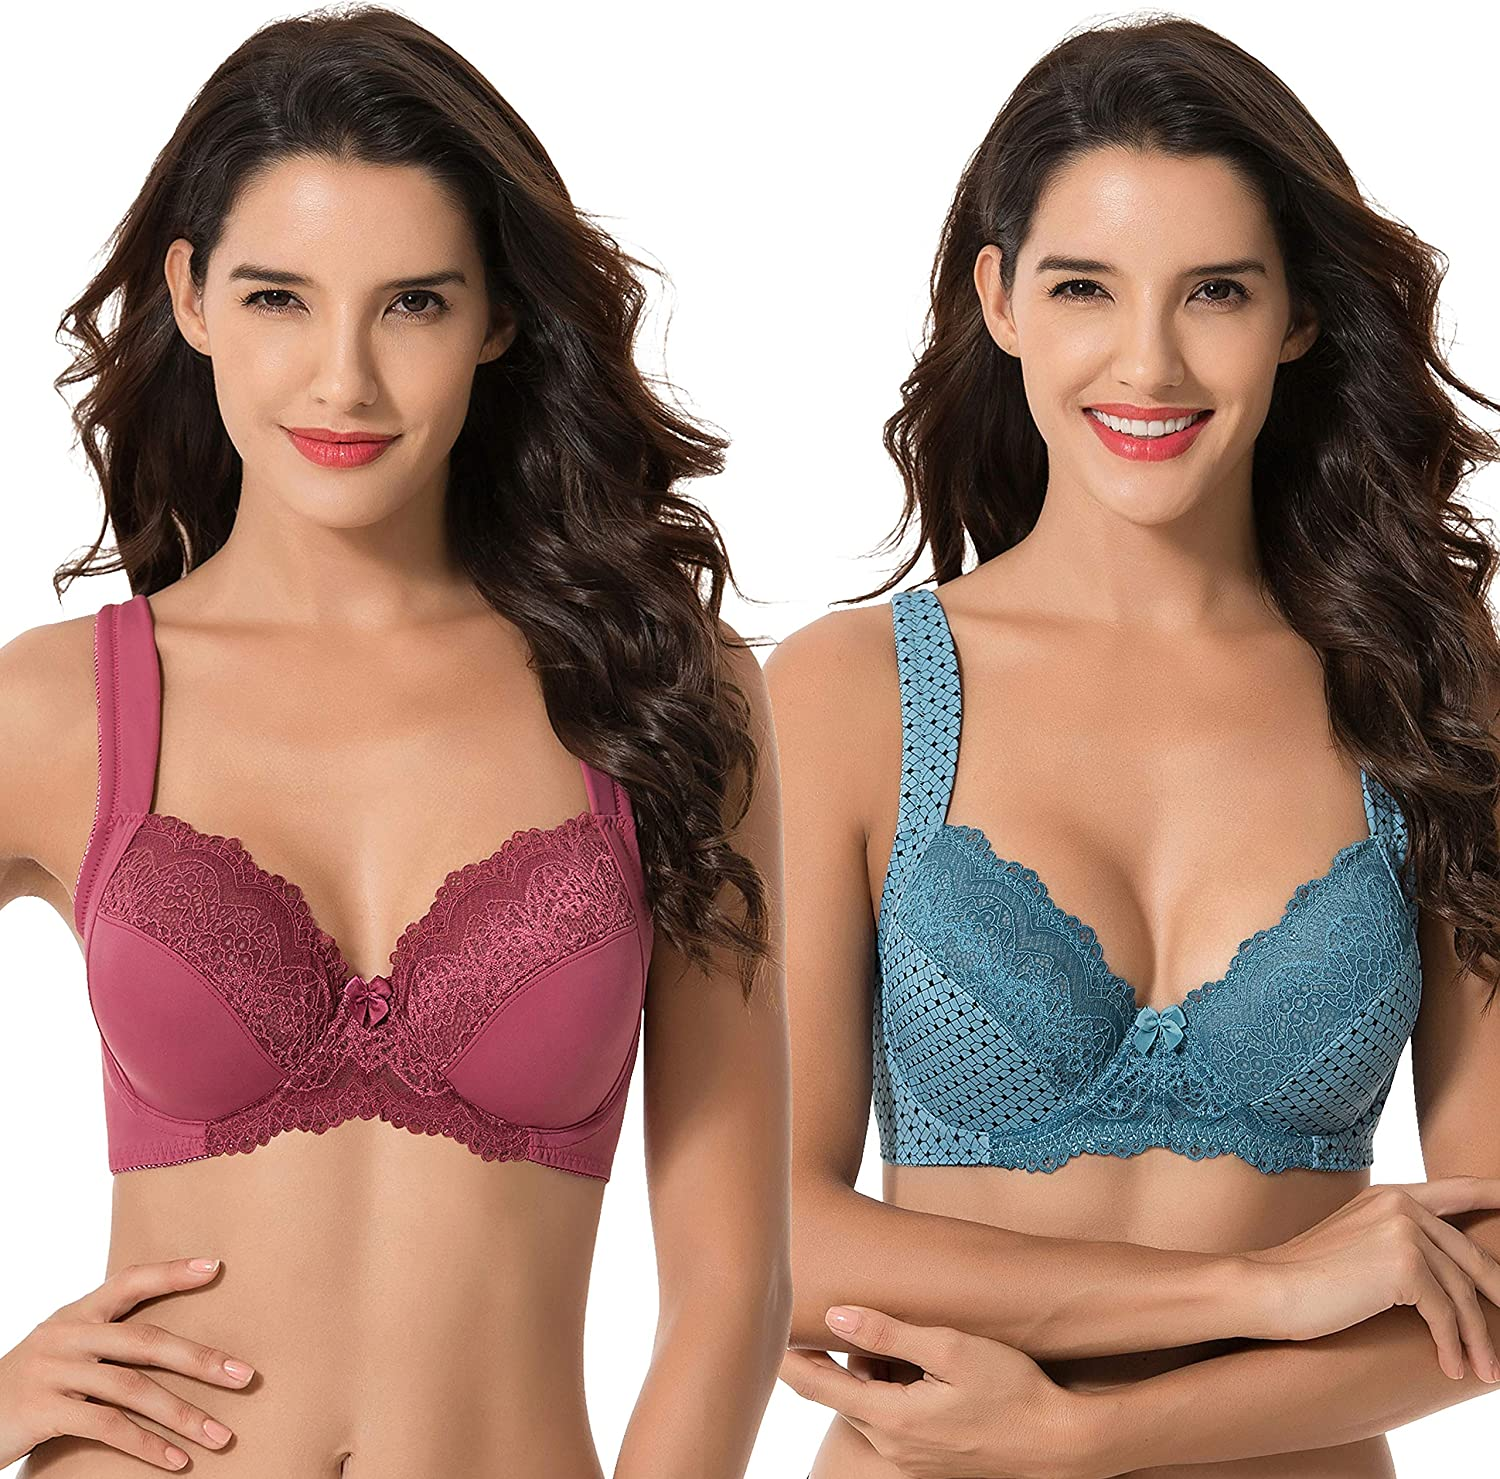 Curve Muse Women's Plus Size Unlined Underwire Lace Bra with Cushion Straps-2PK